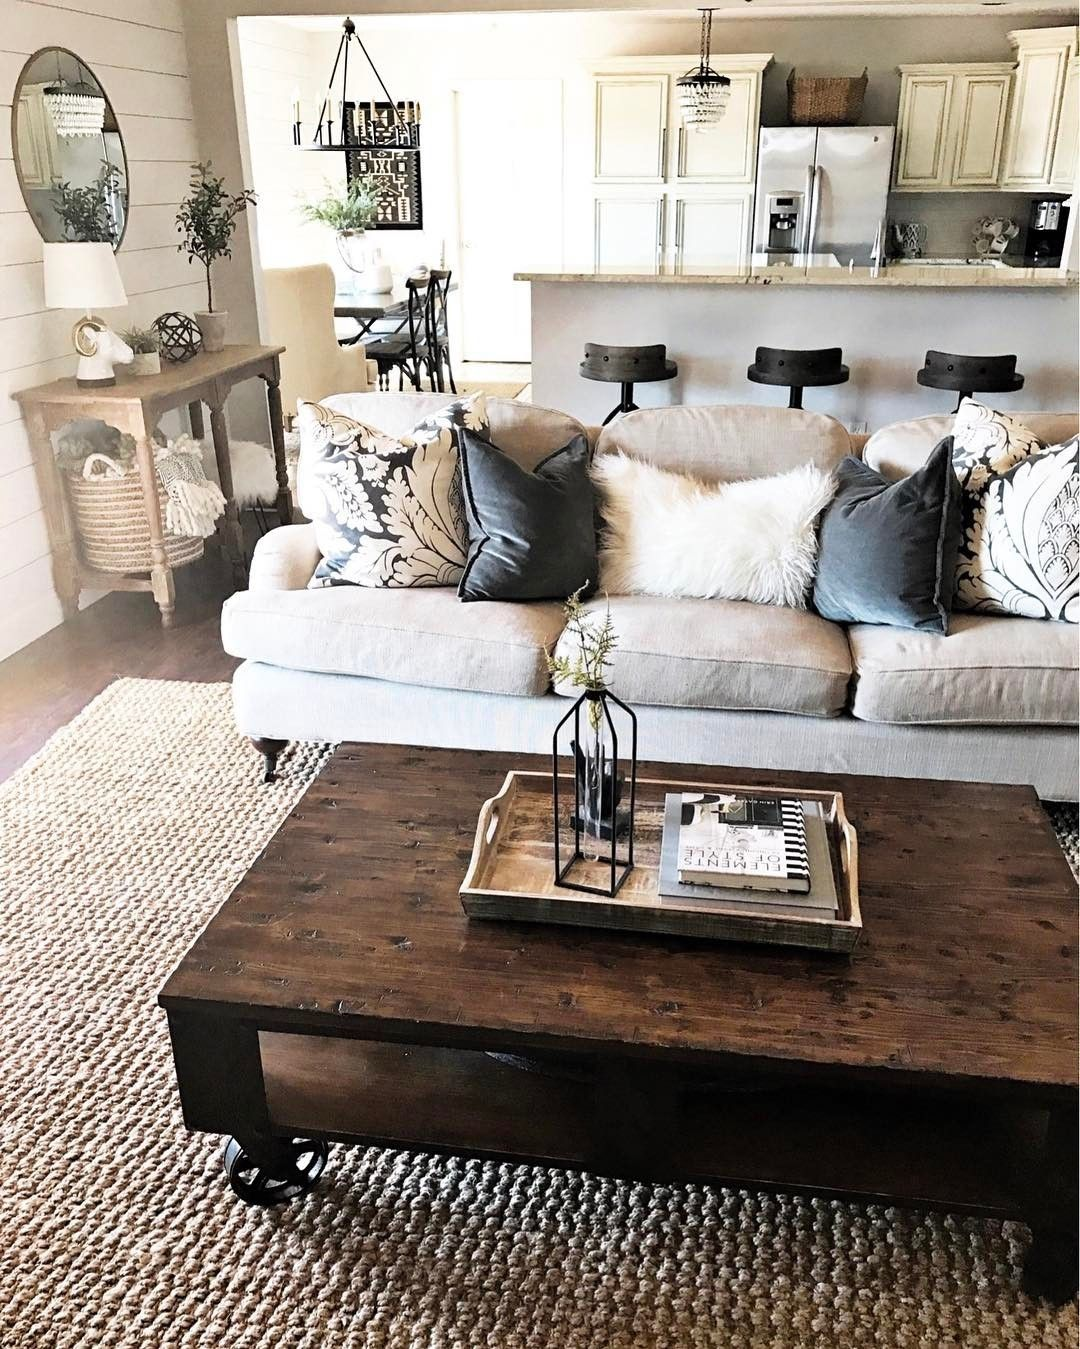 Rustic Modern Living Room Decor Ideas How Can I Decorate My For Home 100